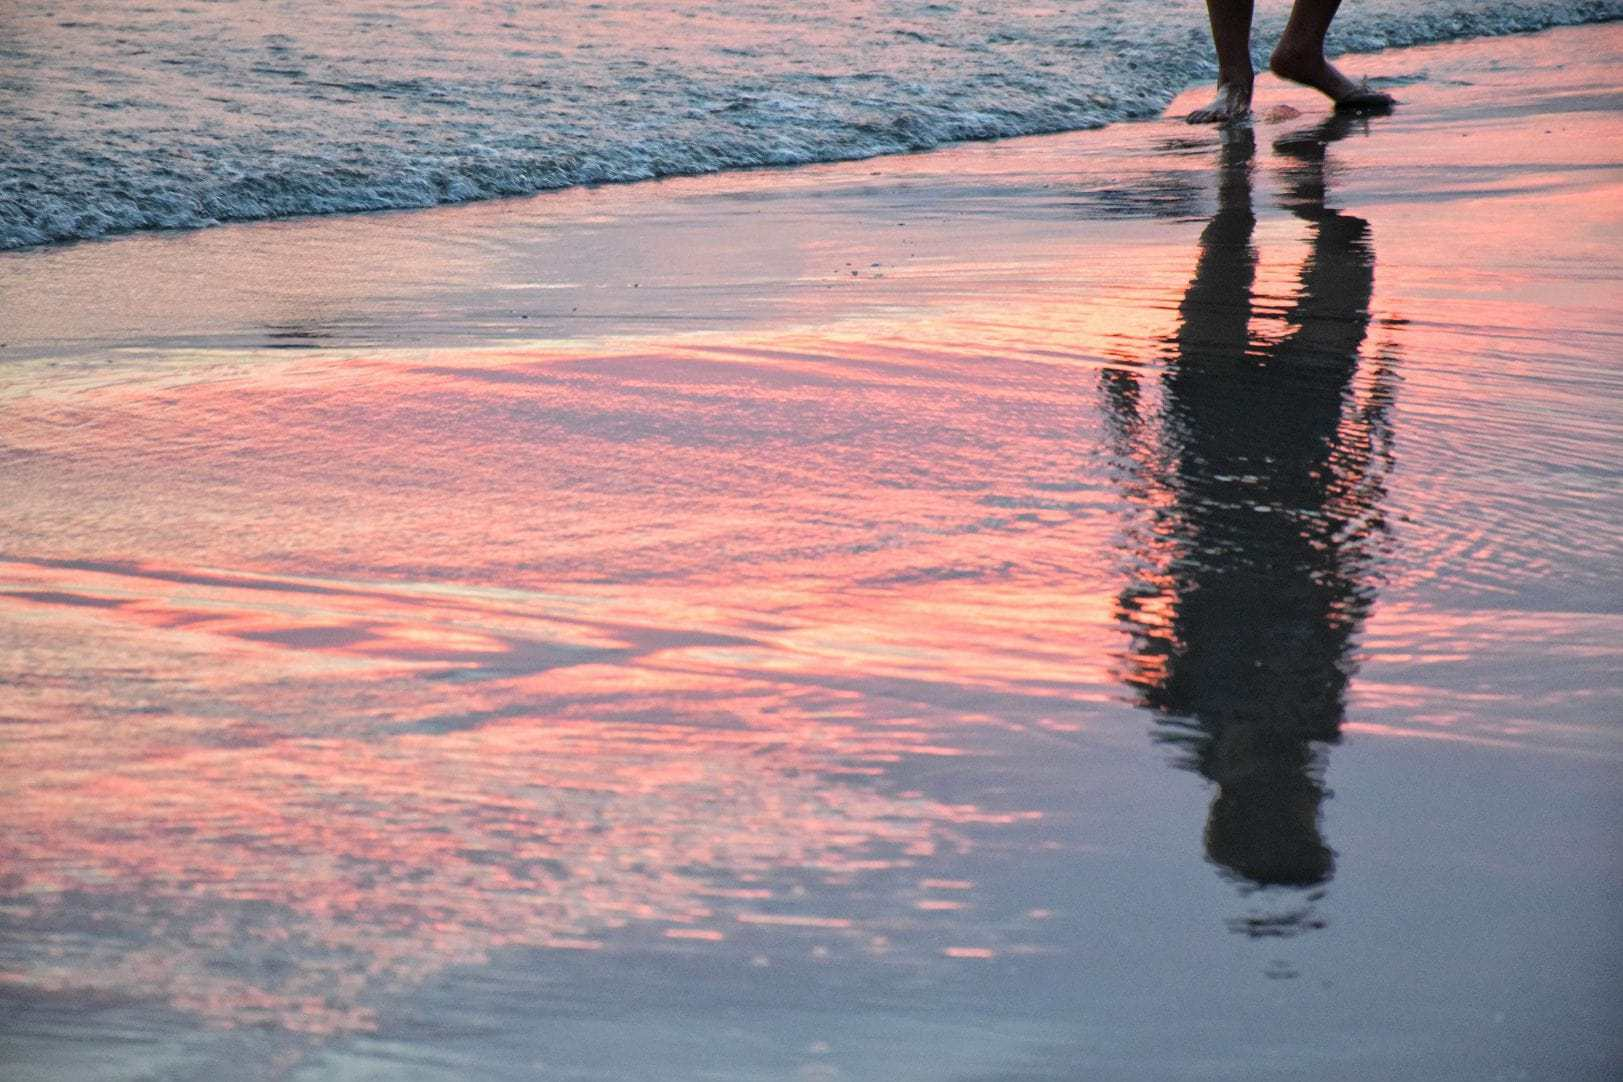 Reflection on water and sand.